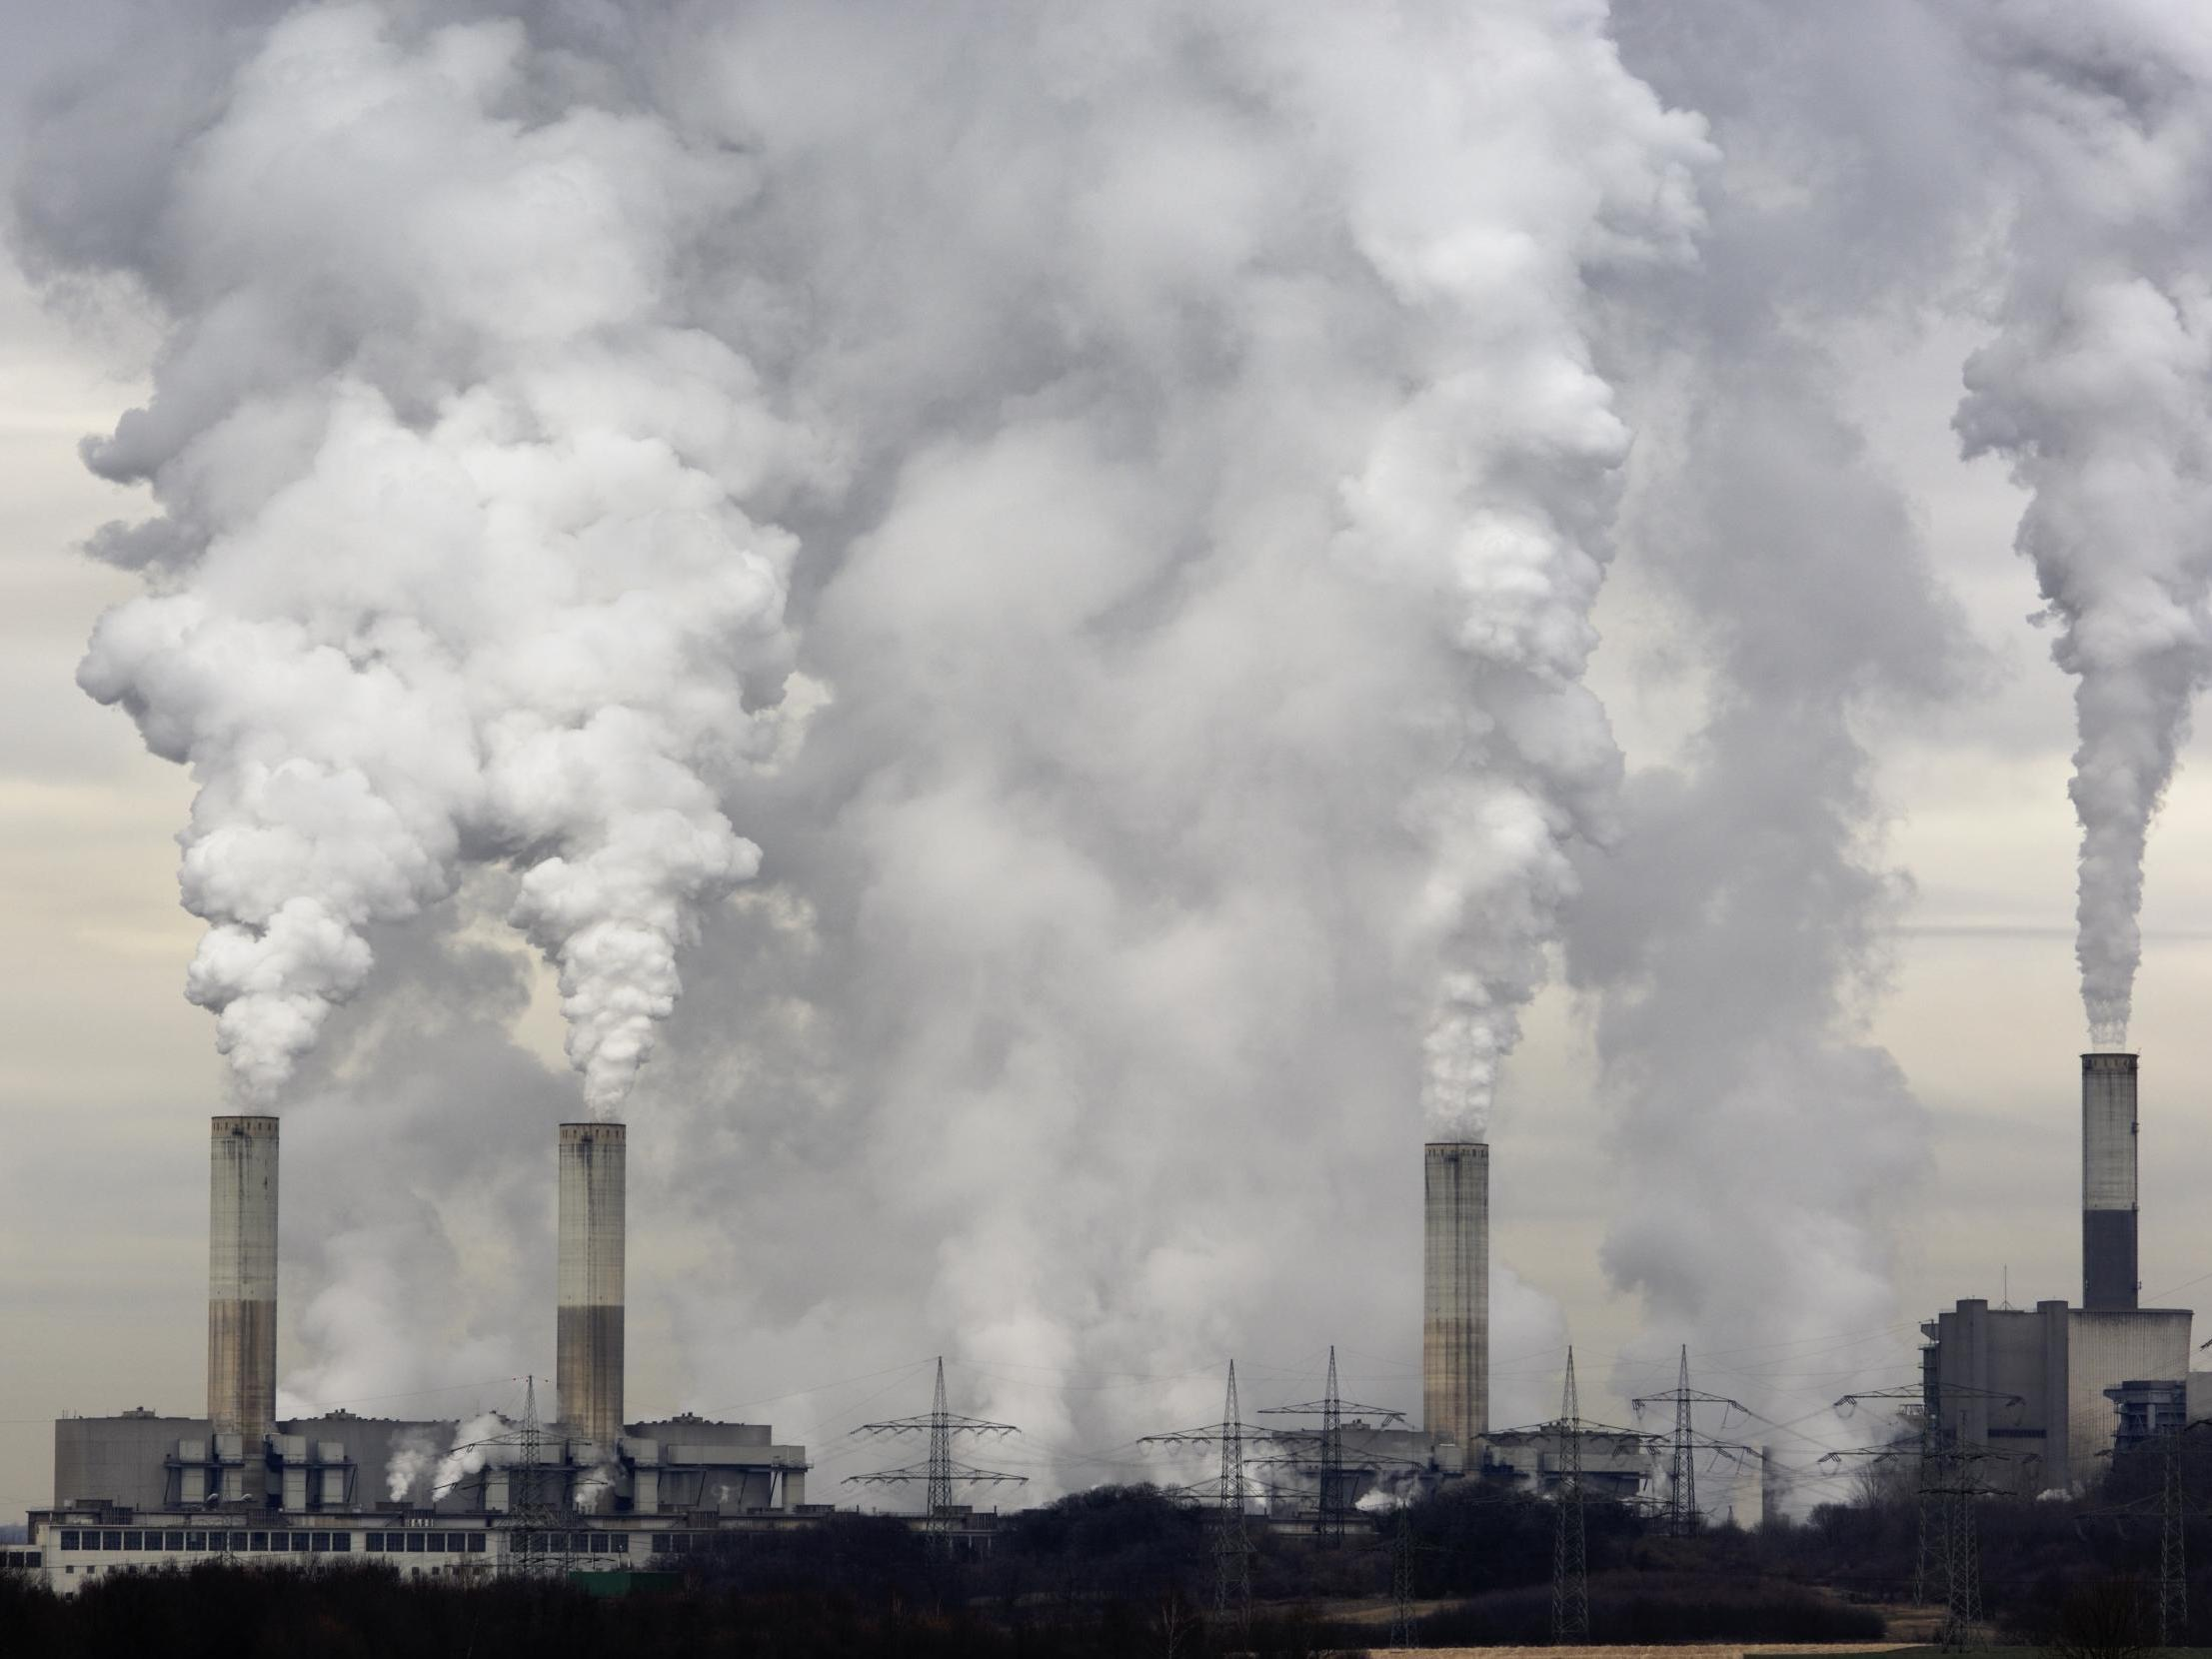 Just 10 per cent of UK companies have a carbon-cutting strategy